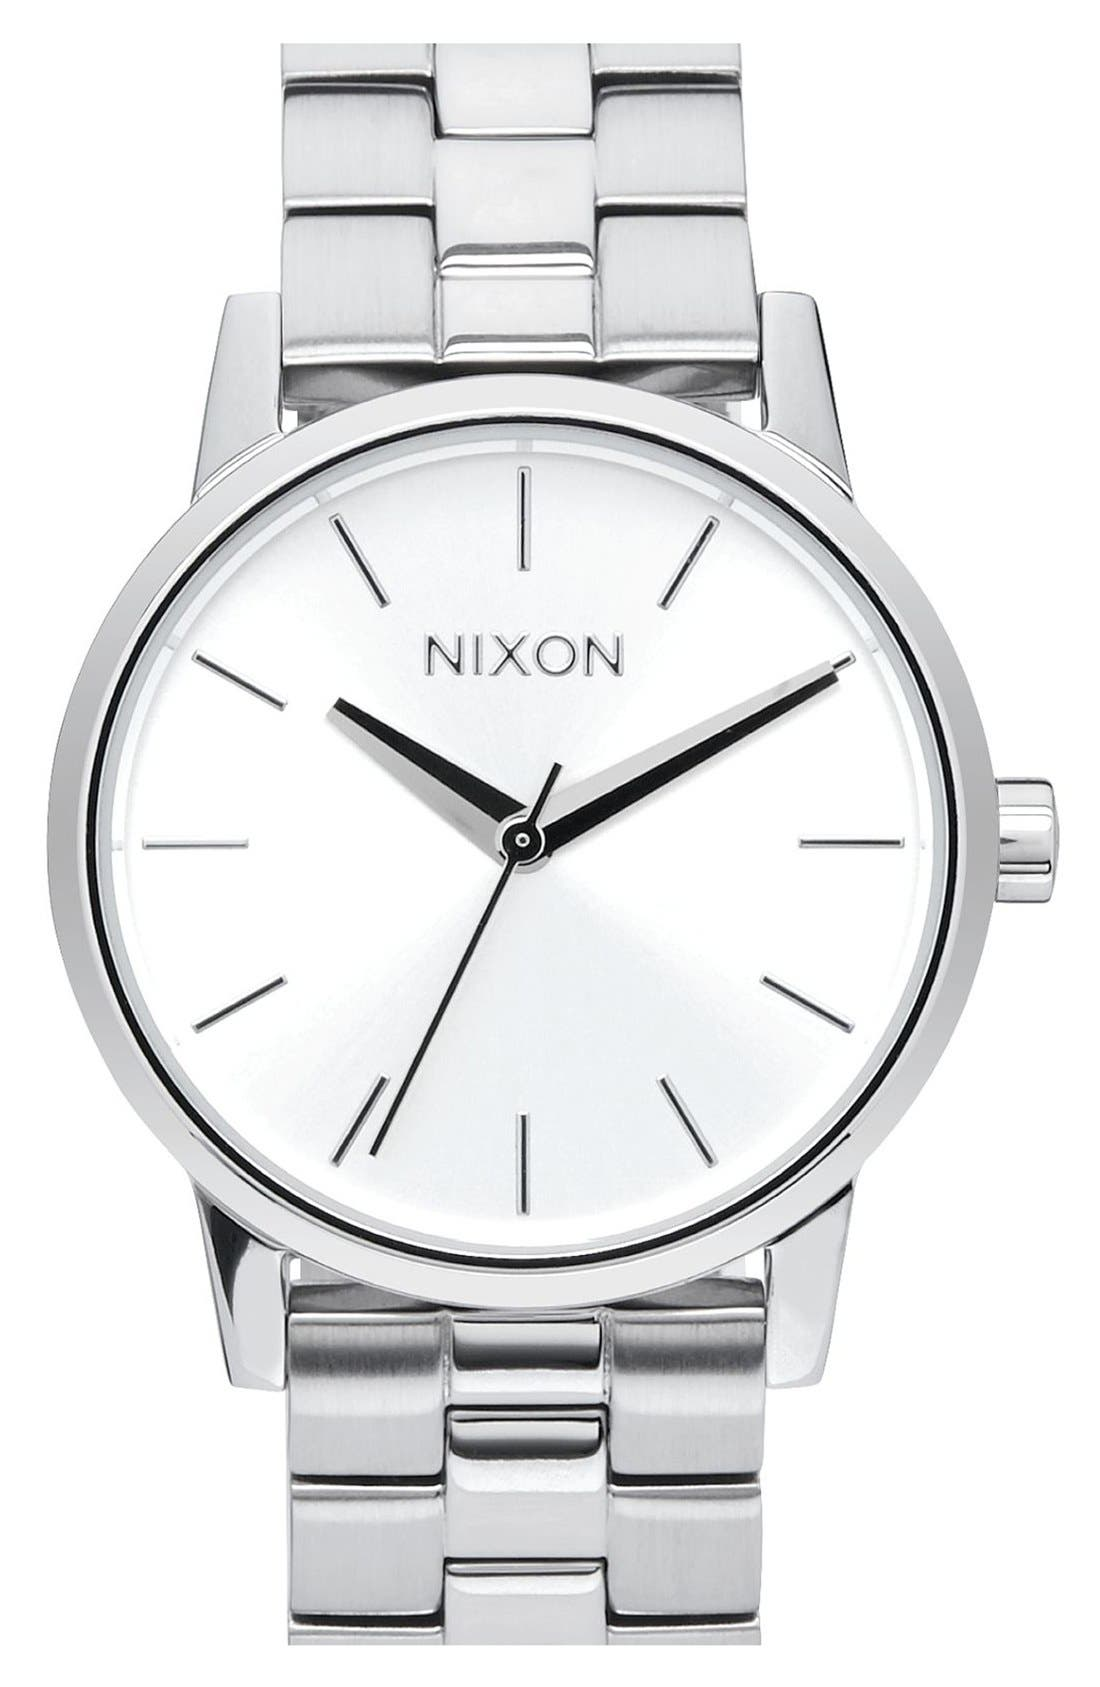 NIXON 'Kensington' Bracelet Watch, 32mm